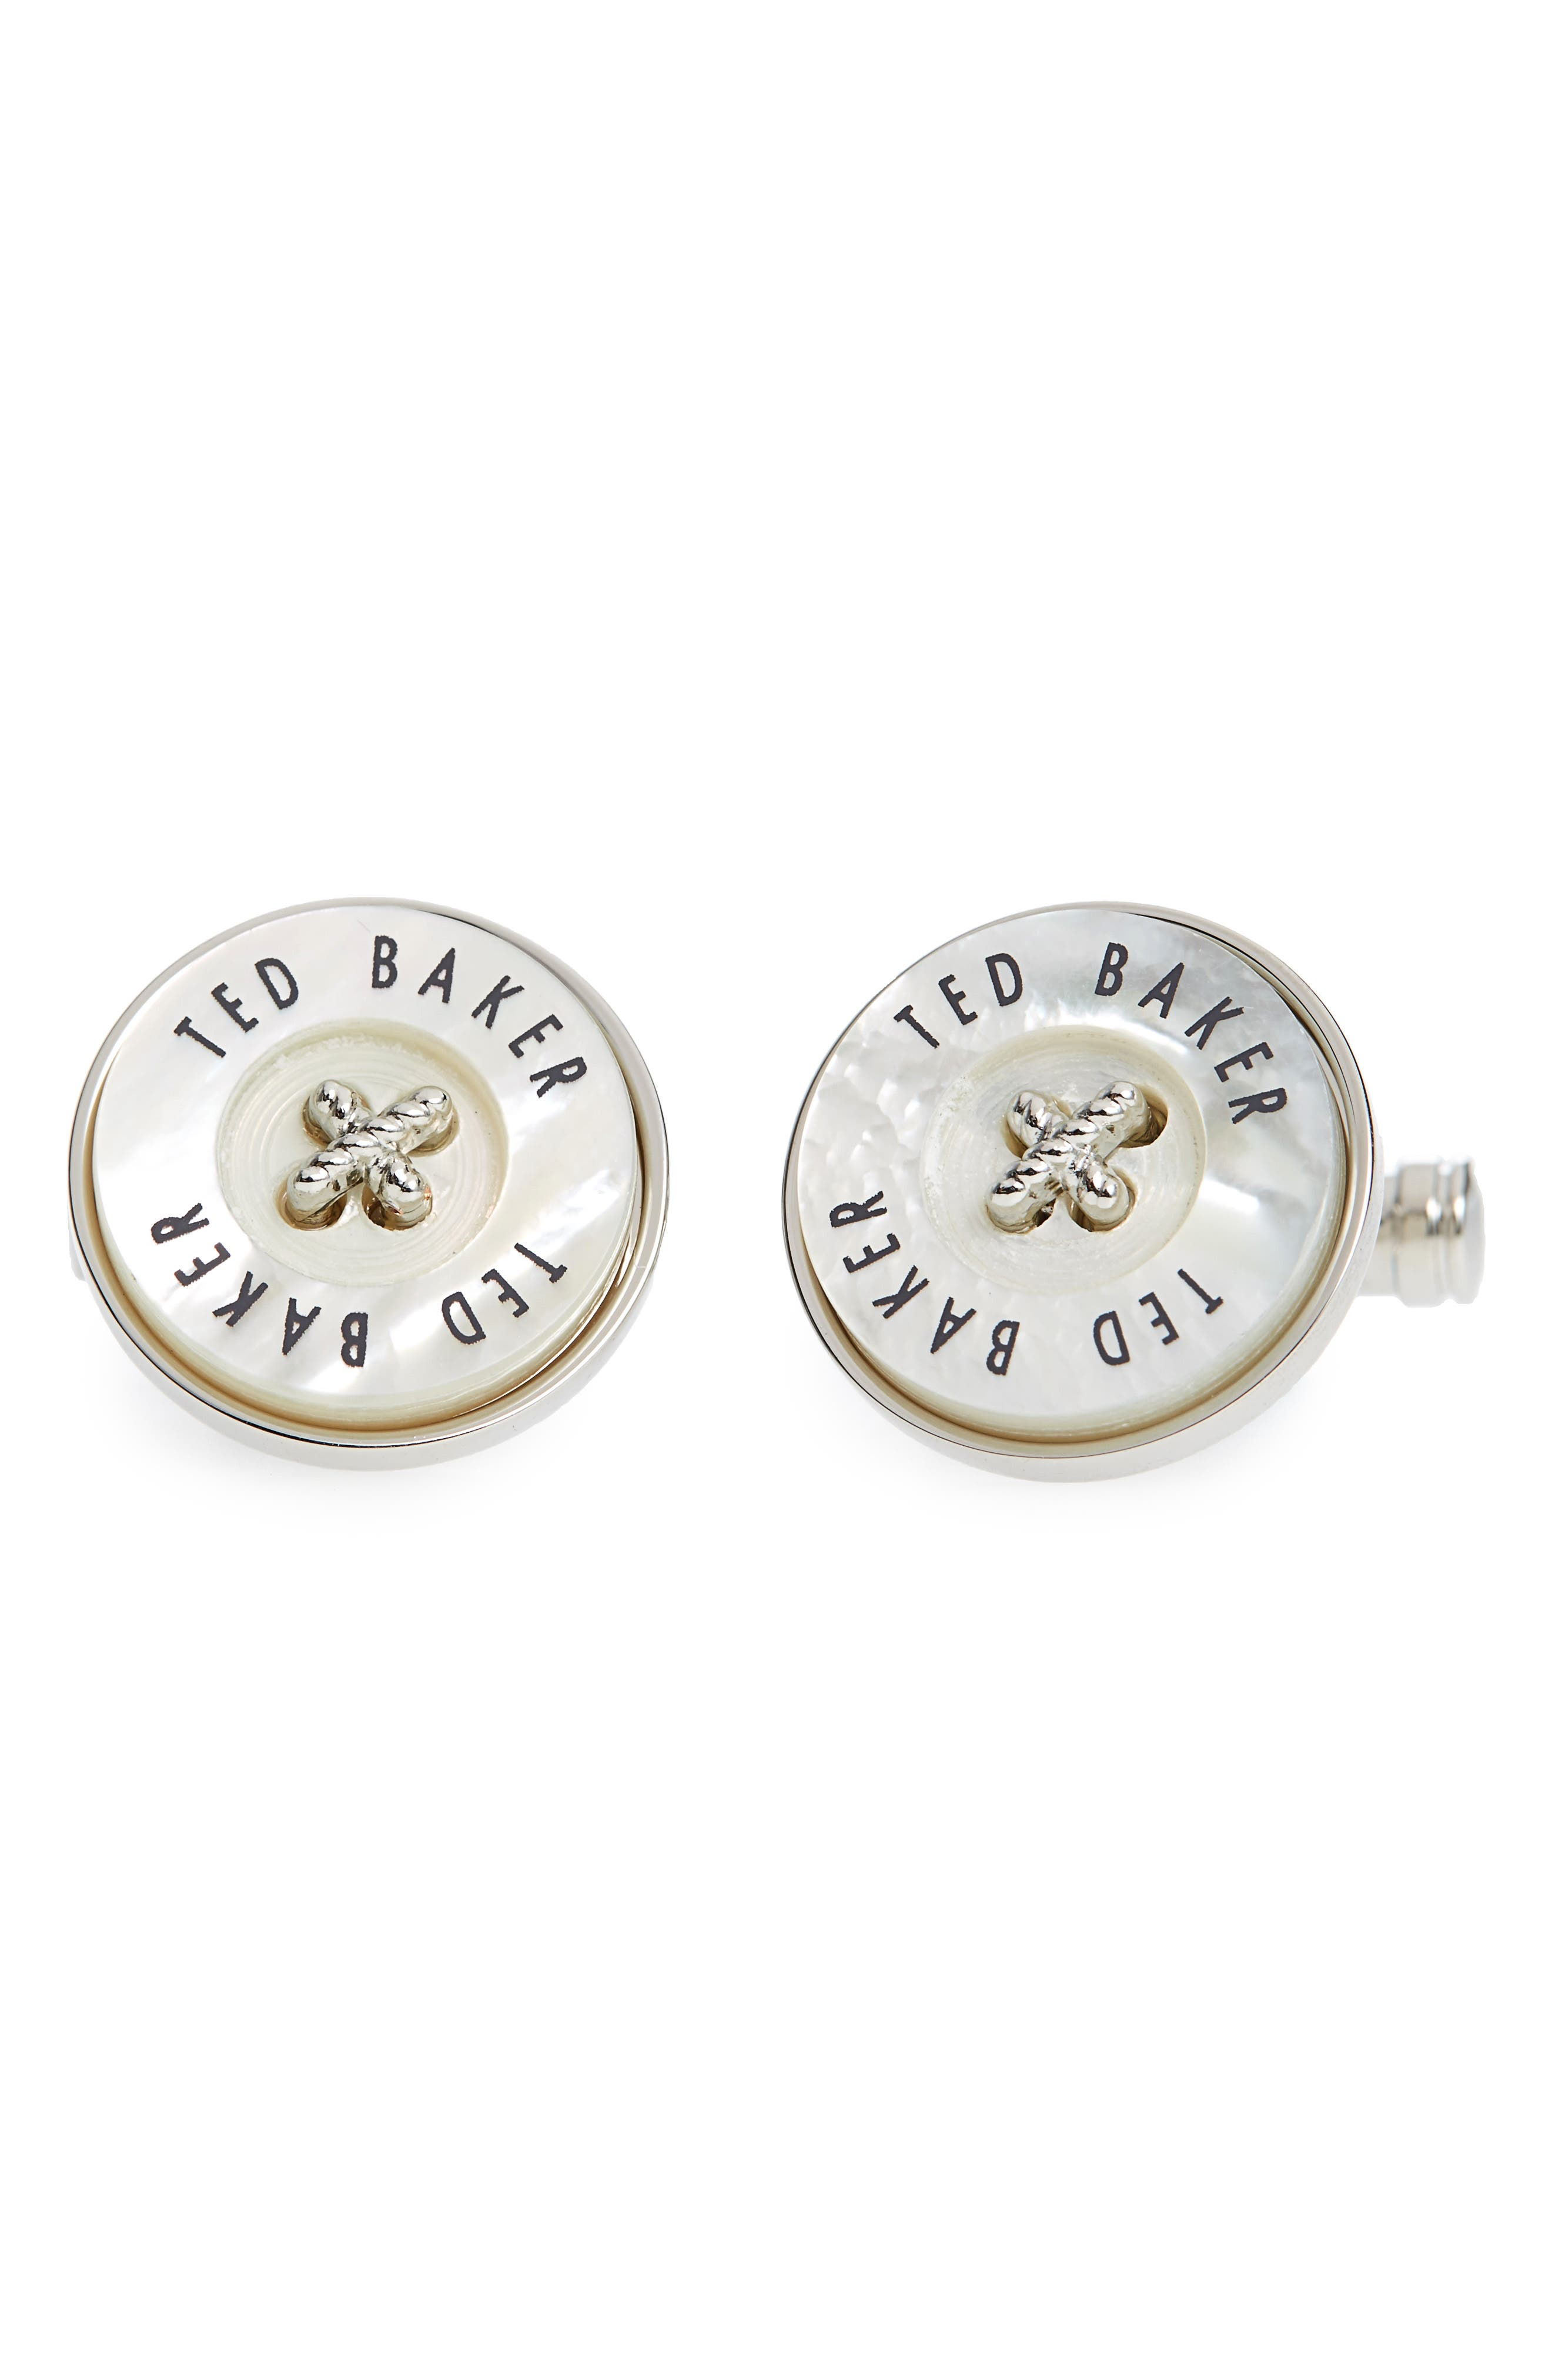 Sizzle Cuff Links,                             Main thumbnail 1, color,                             110